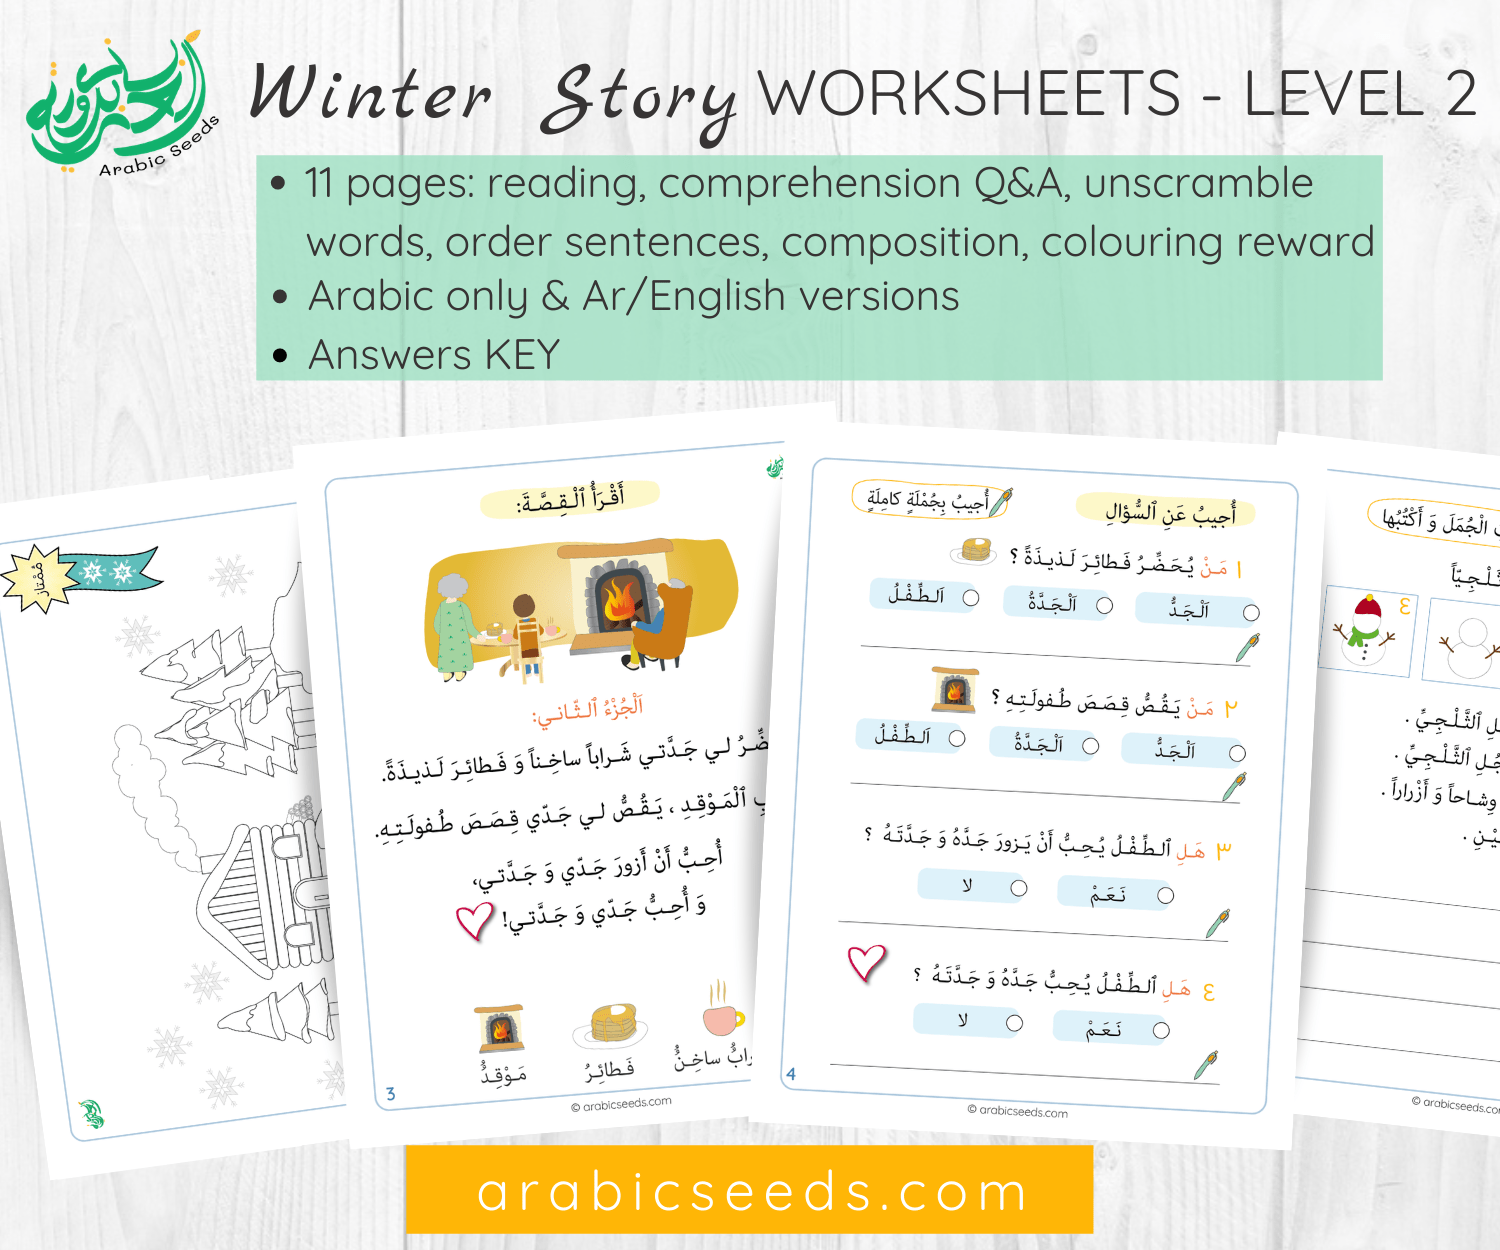 Arabic Winter Story Worksheets – Level 2, Words And Sentences (Arabic Only  And Arabic/English) – Arabic Seeds Membership